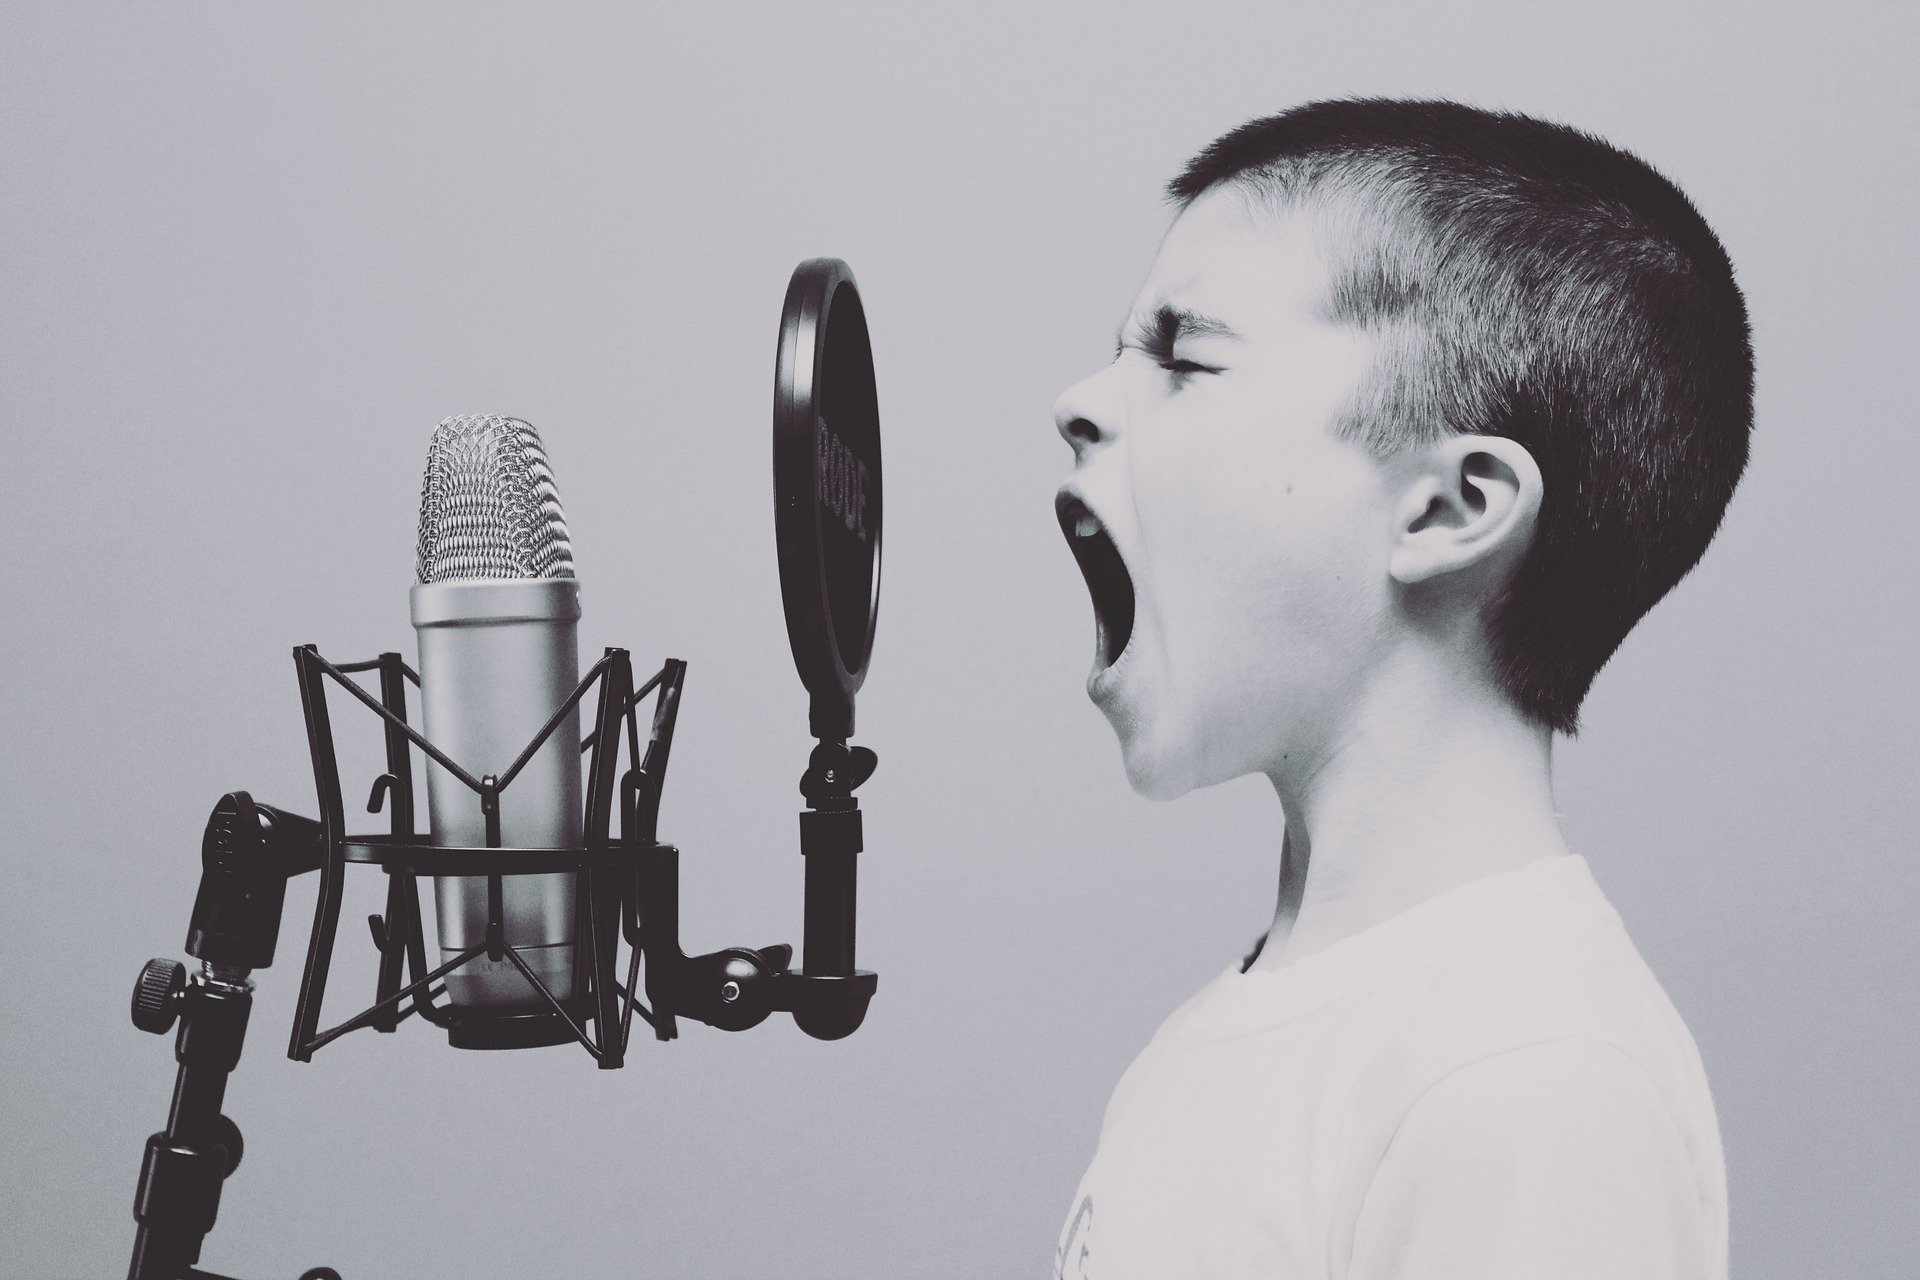 A young boy screaming into a microphone in a studio. | Source: Pixabay.